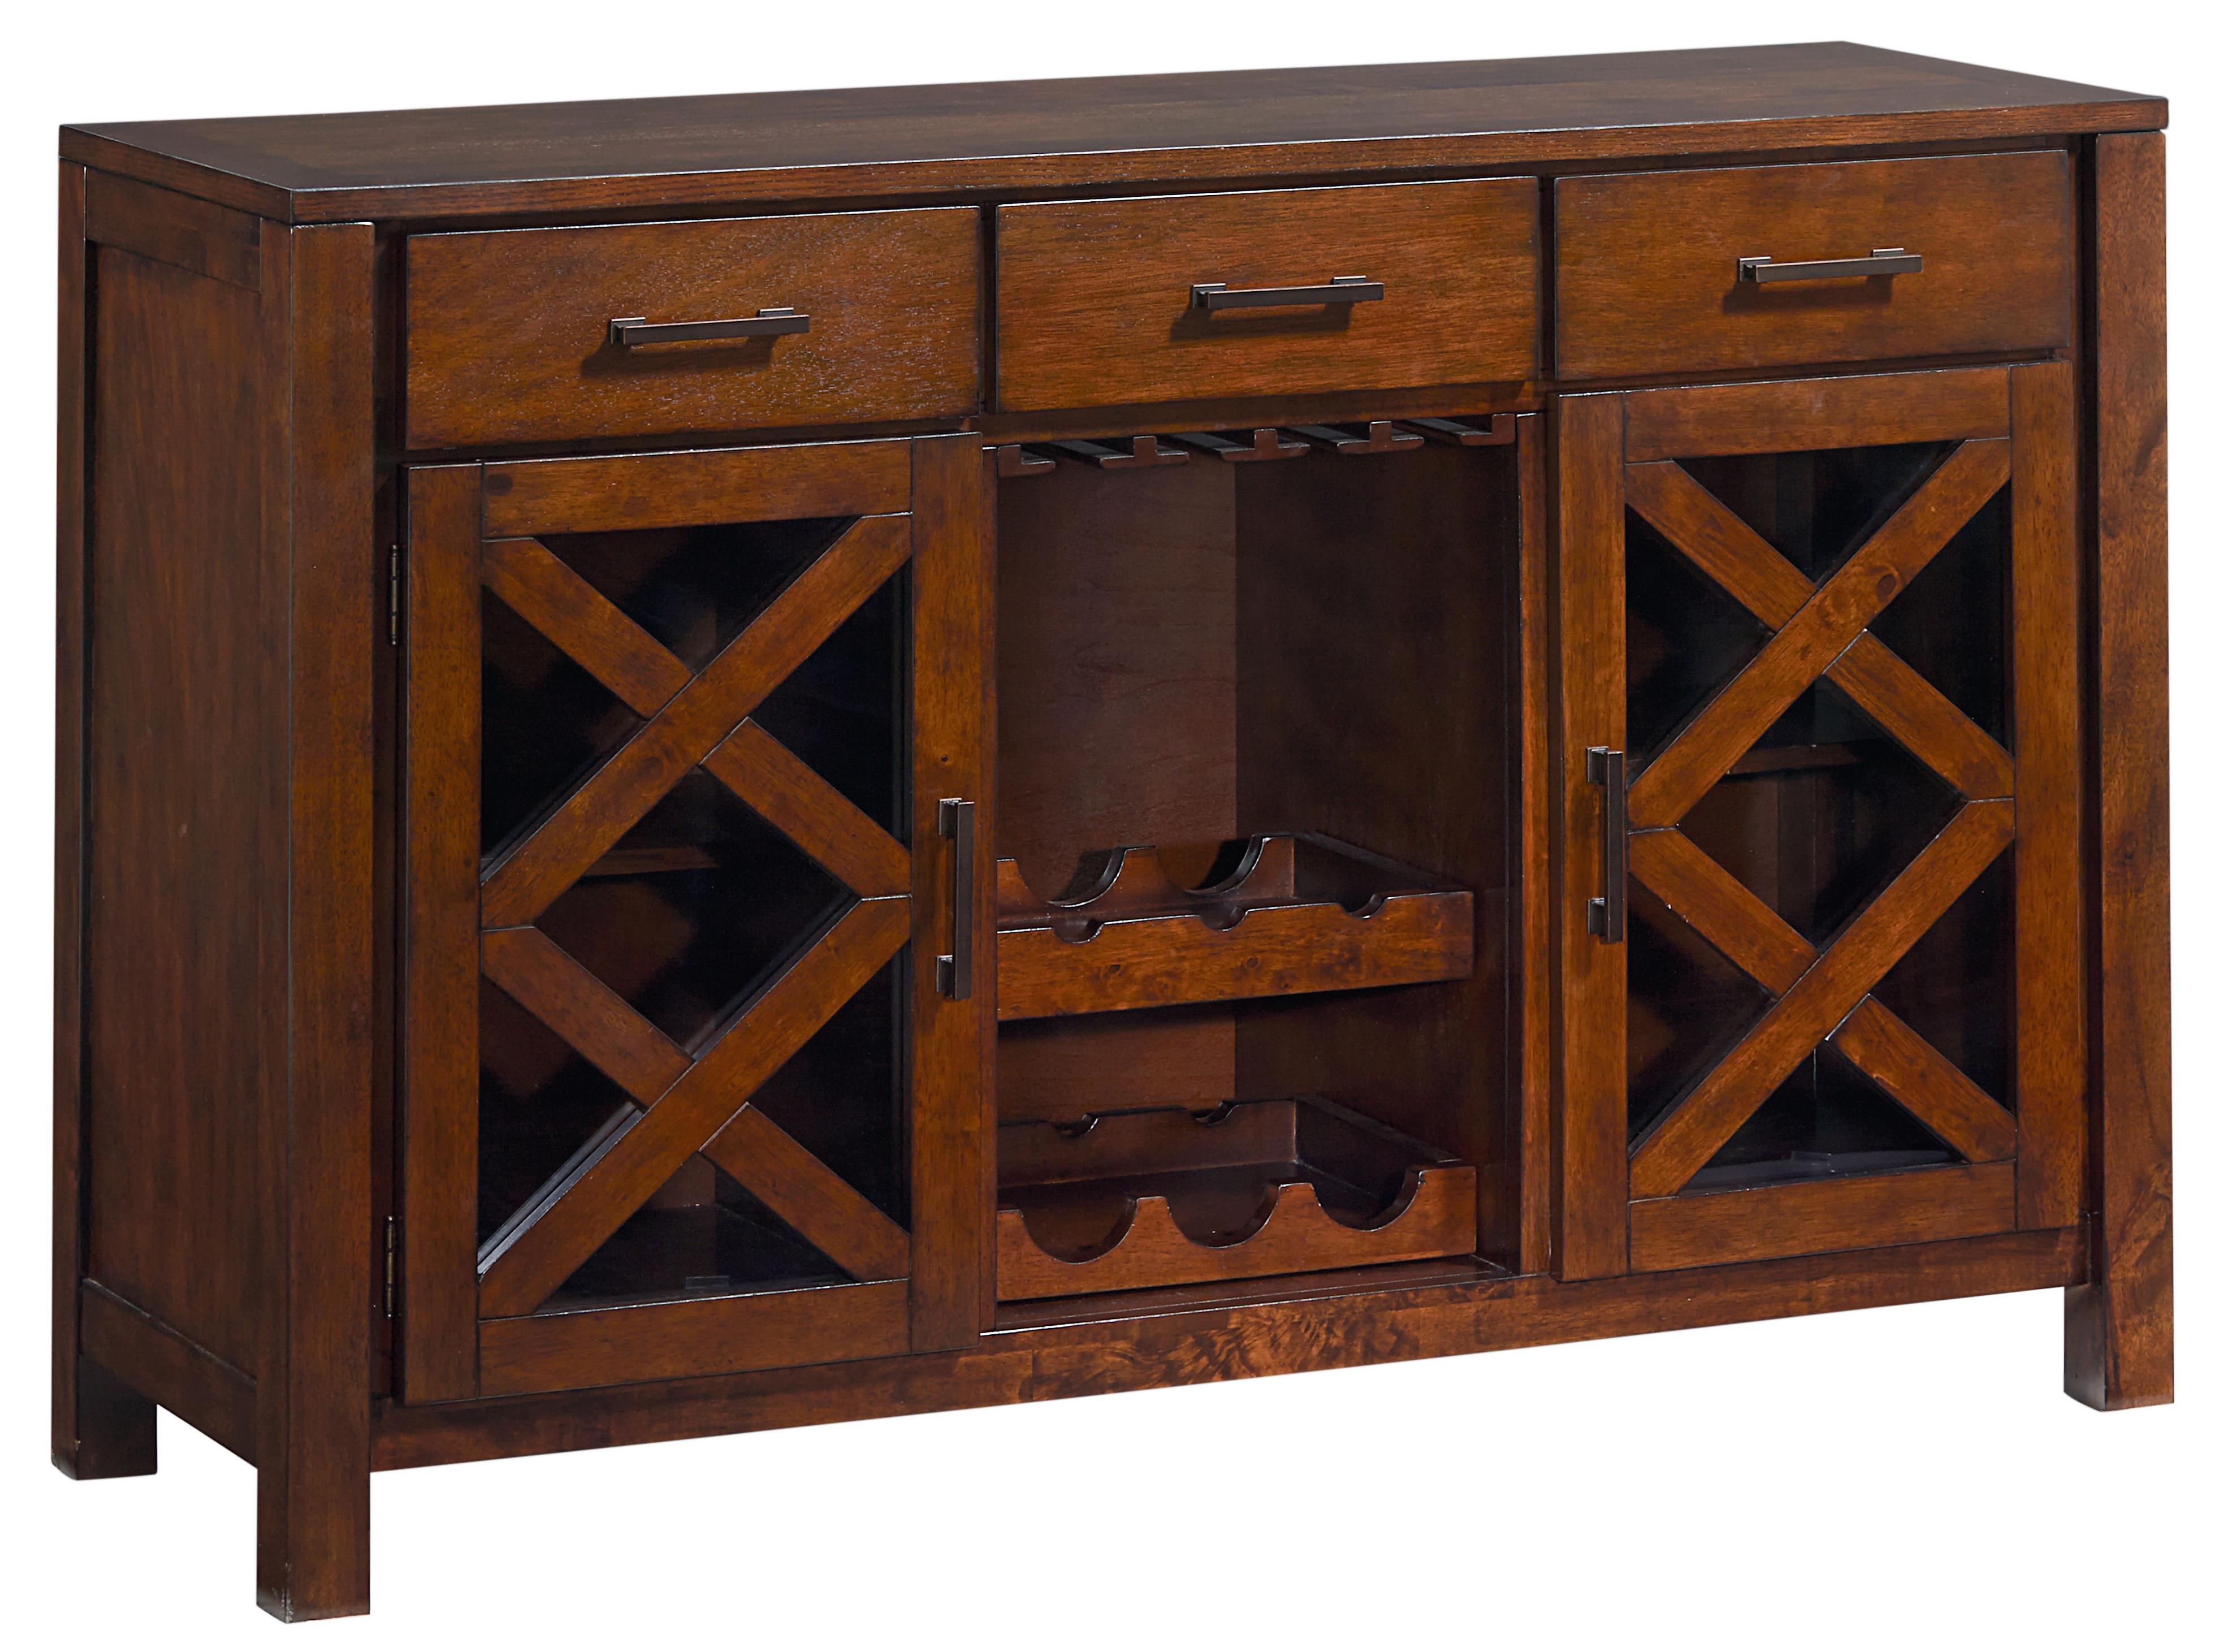 Standard Furniture Omaha Brown Sideboard - Item Number: 16182